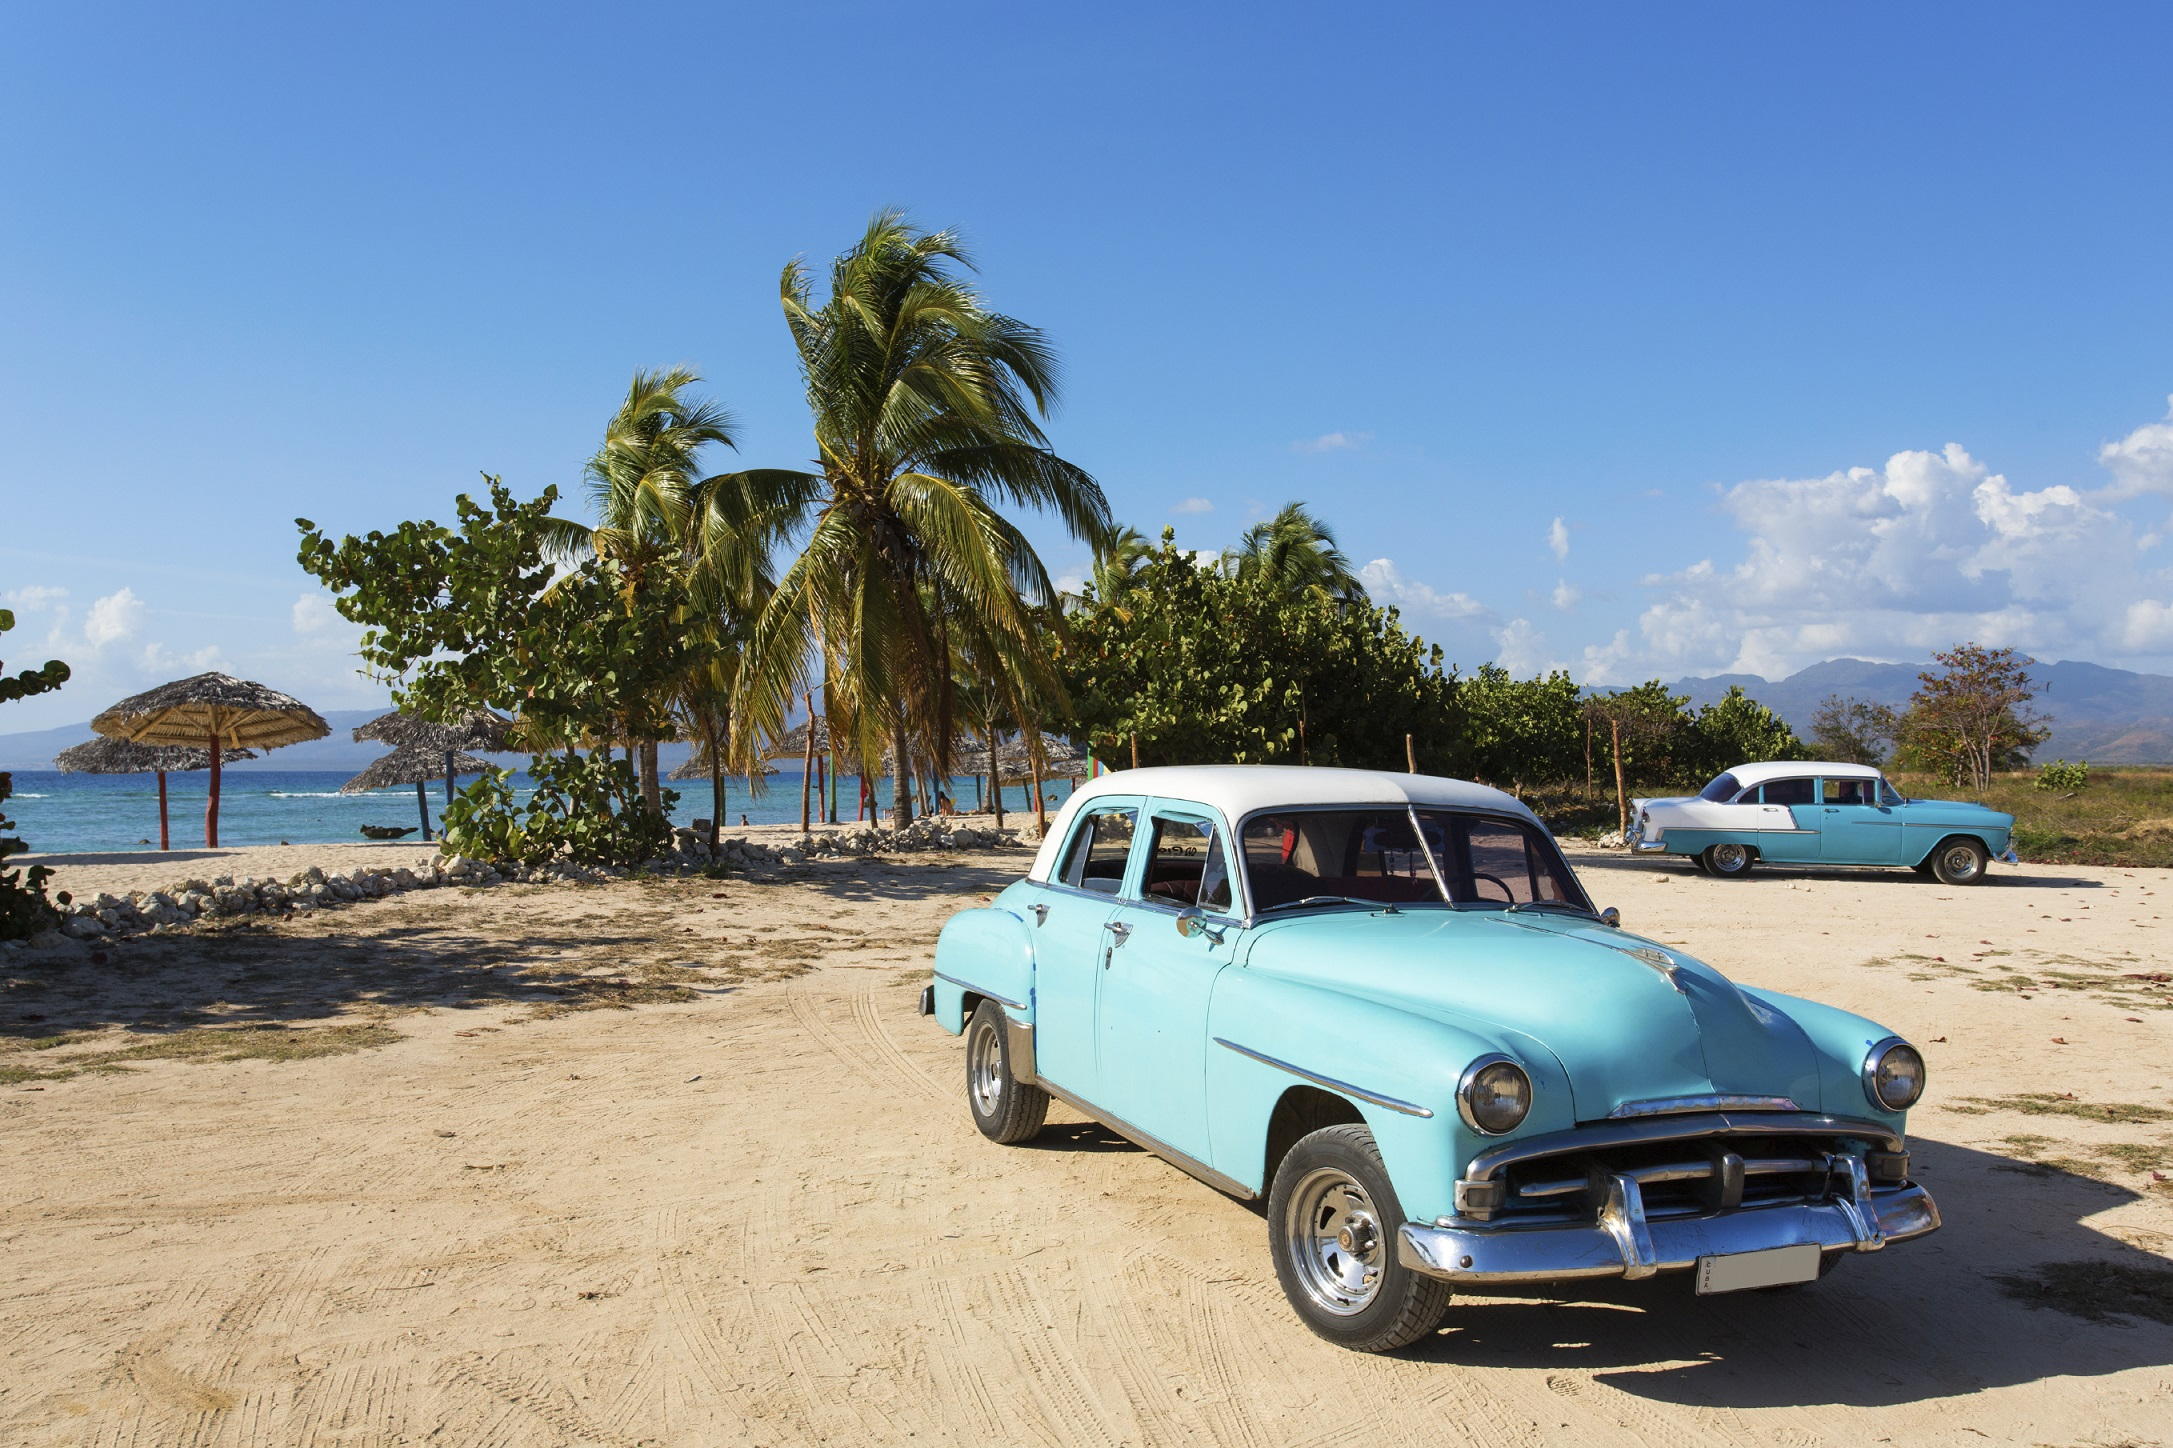 Old classic car on the beach of Cuba